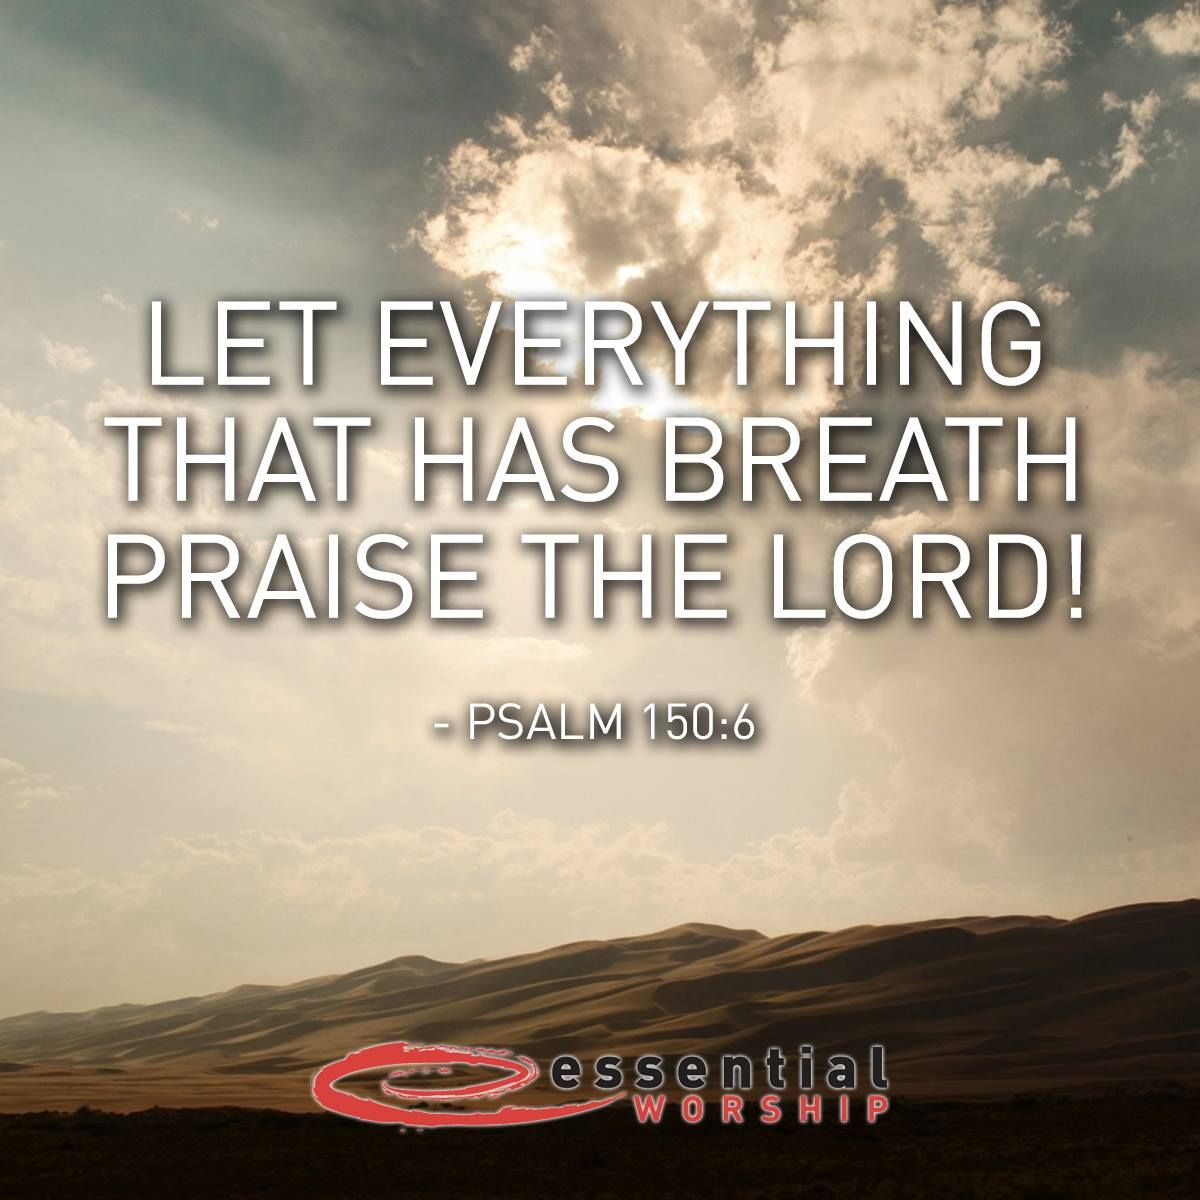 Superieur Let Everything That Has Breath Praise The Lord! Psalm 150:6 #bibleverses